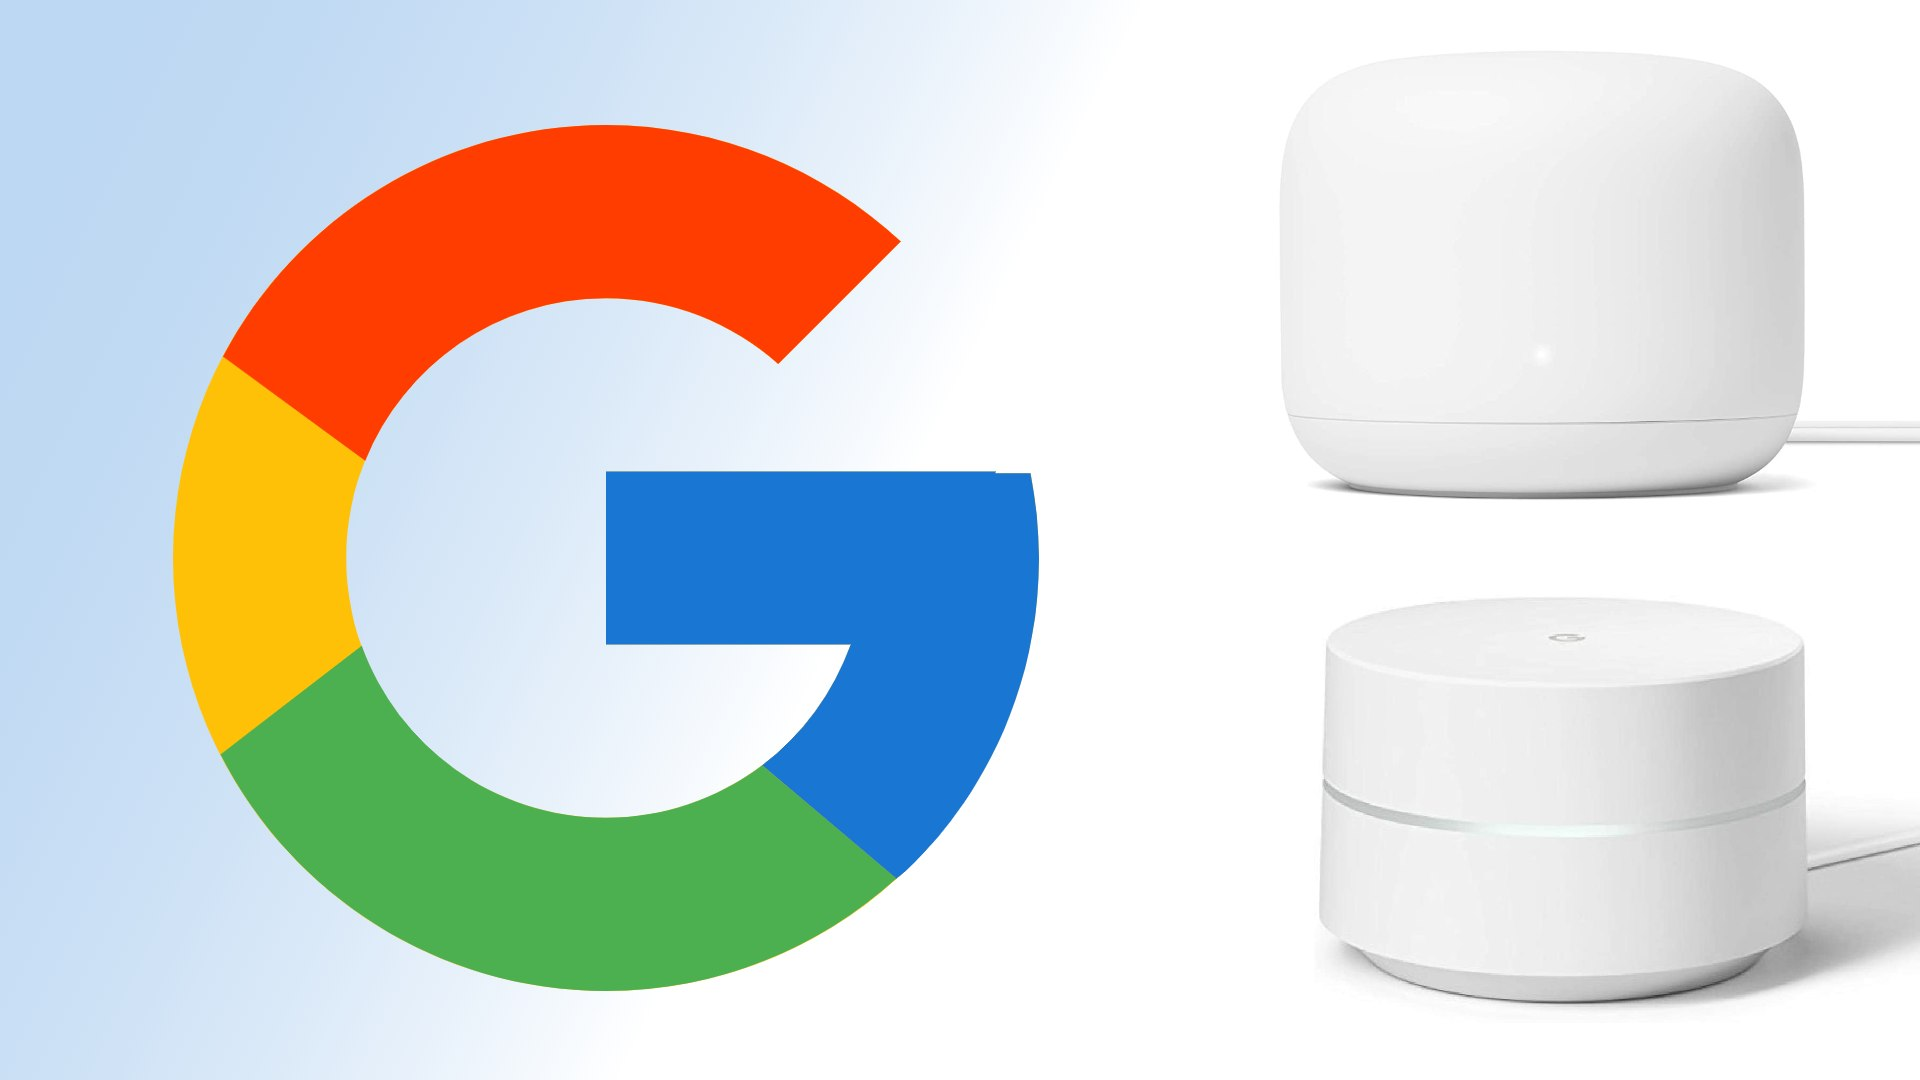 Google may launch a new, lower-cost Nest Wi-Fi router at its hardware event next week